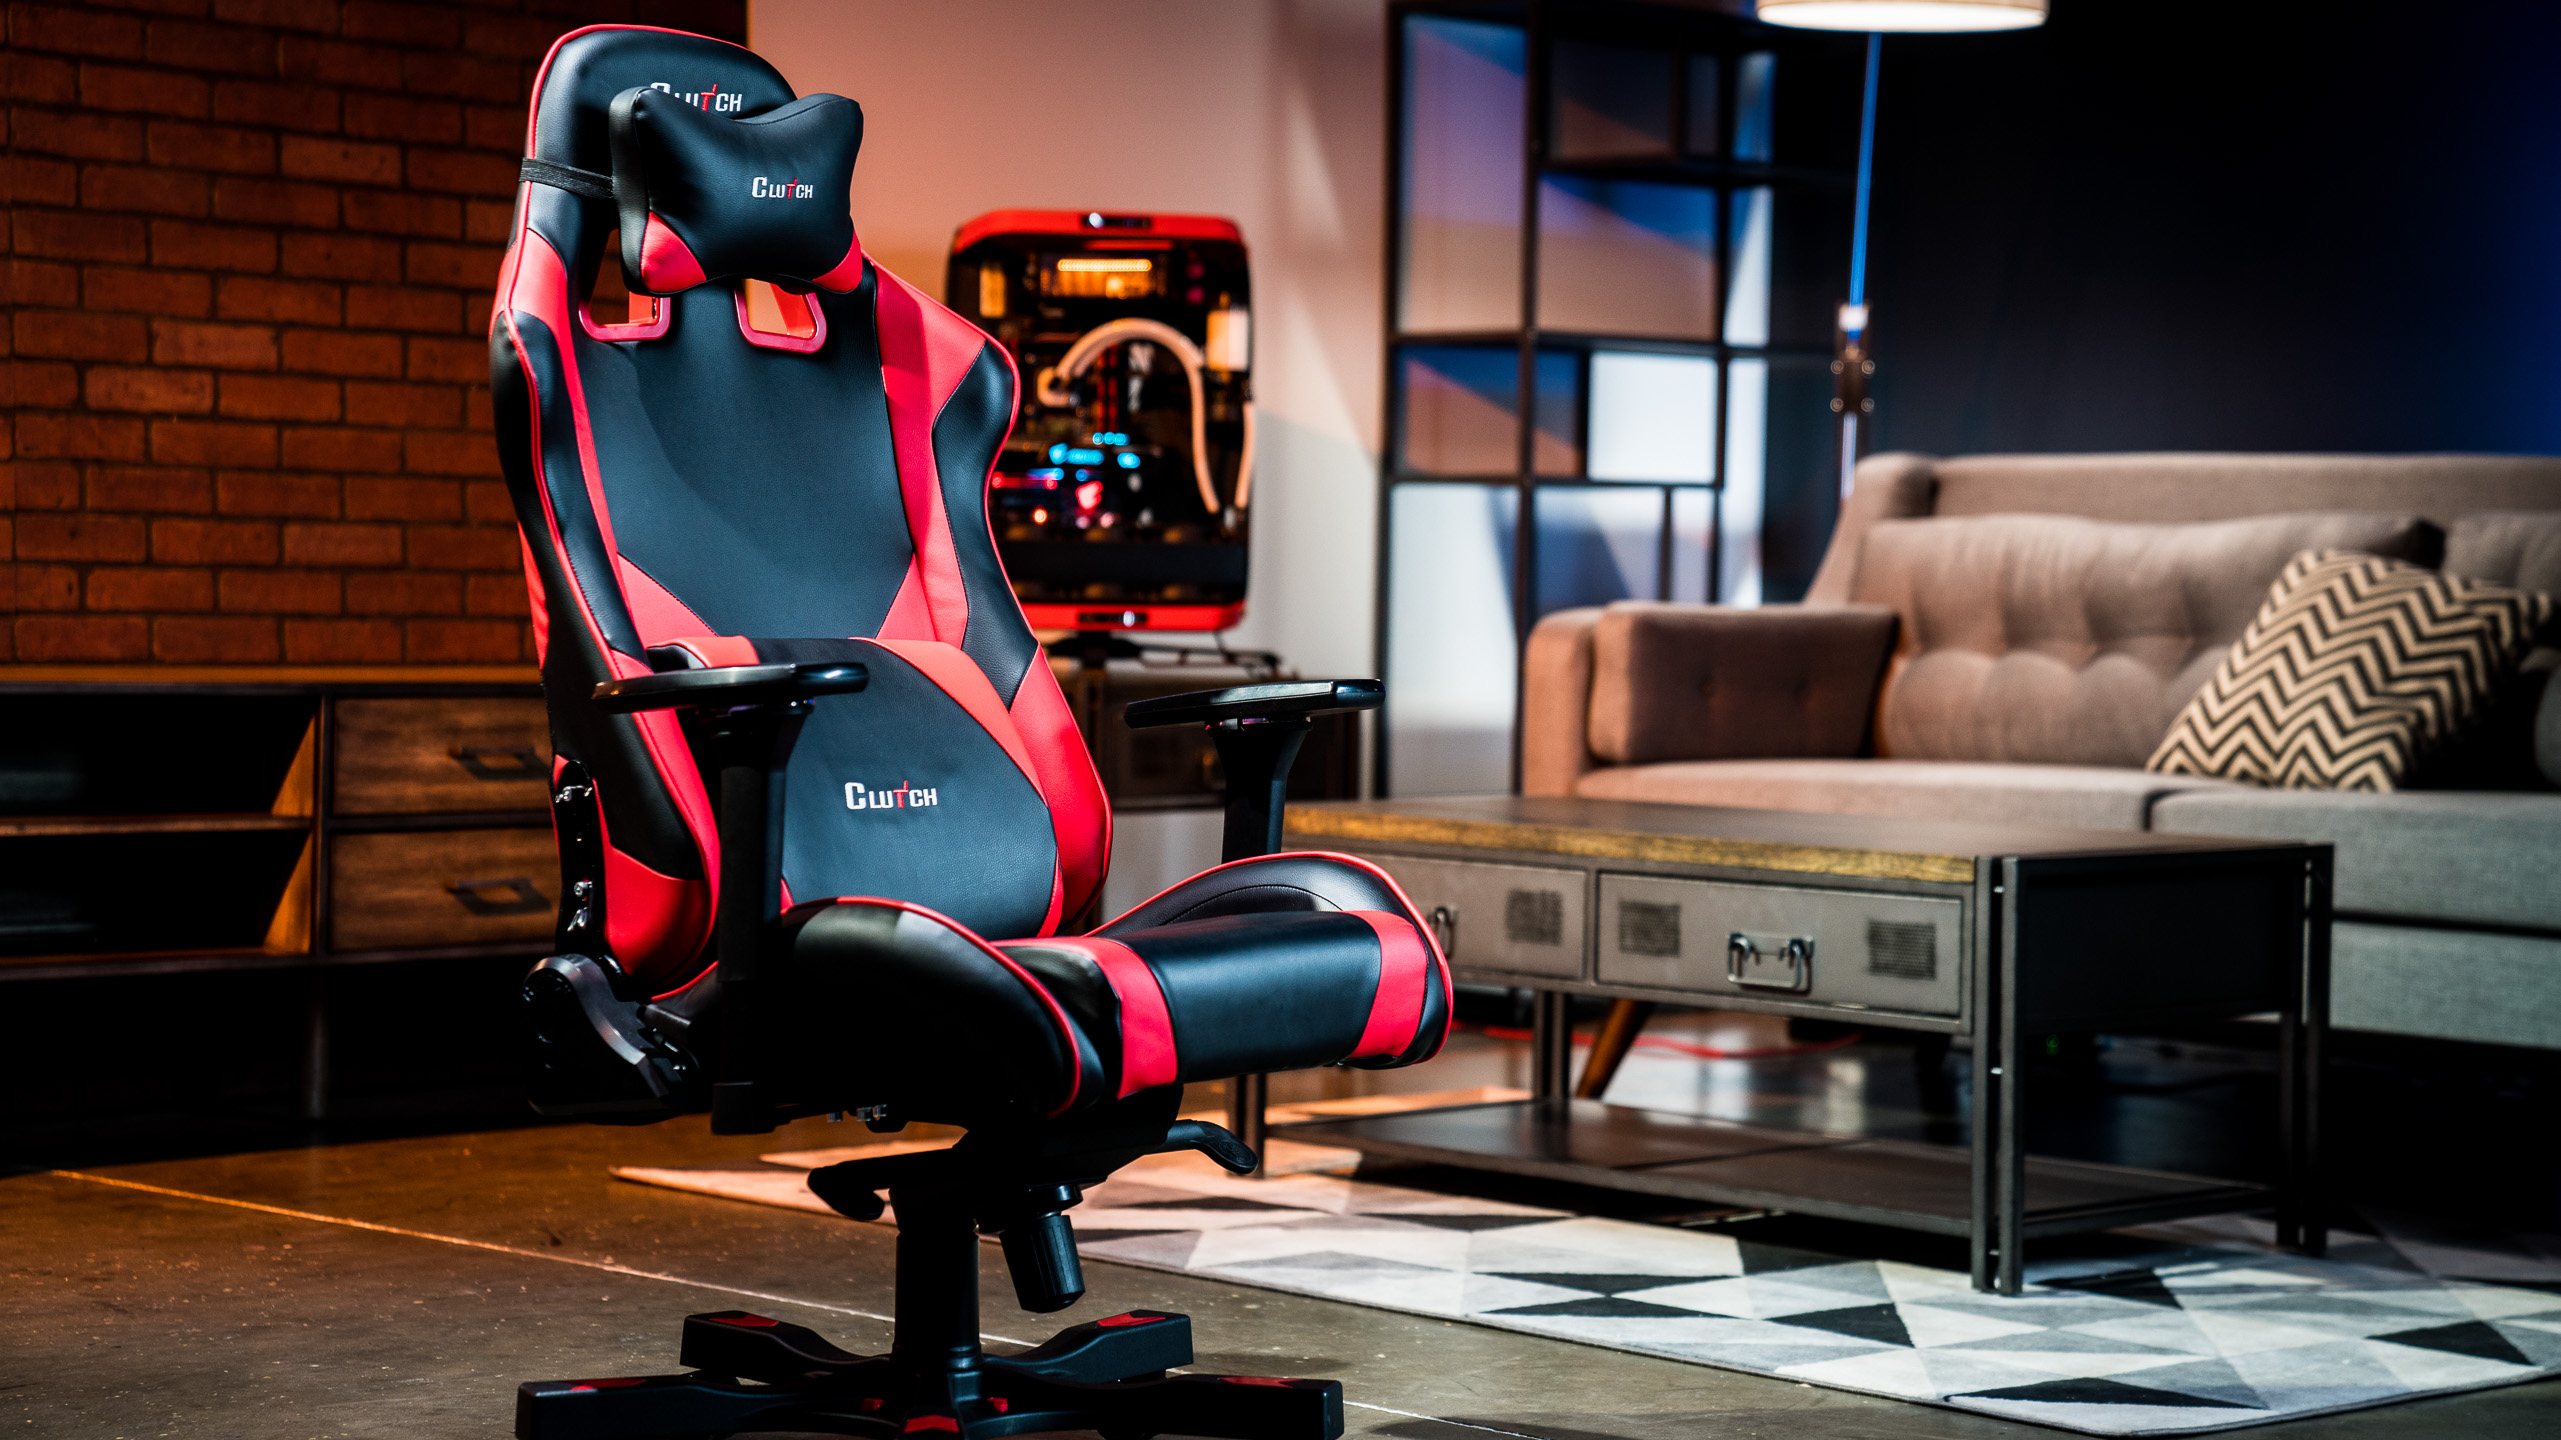 clutch-gaming-chair-battlestation-red-black-6